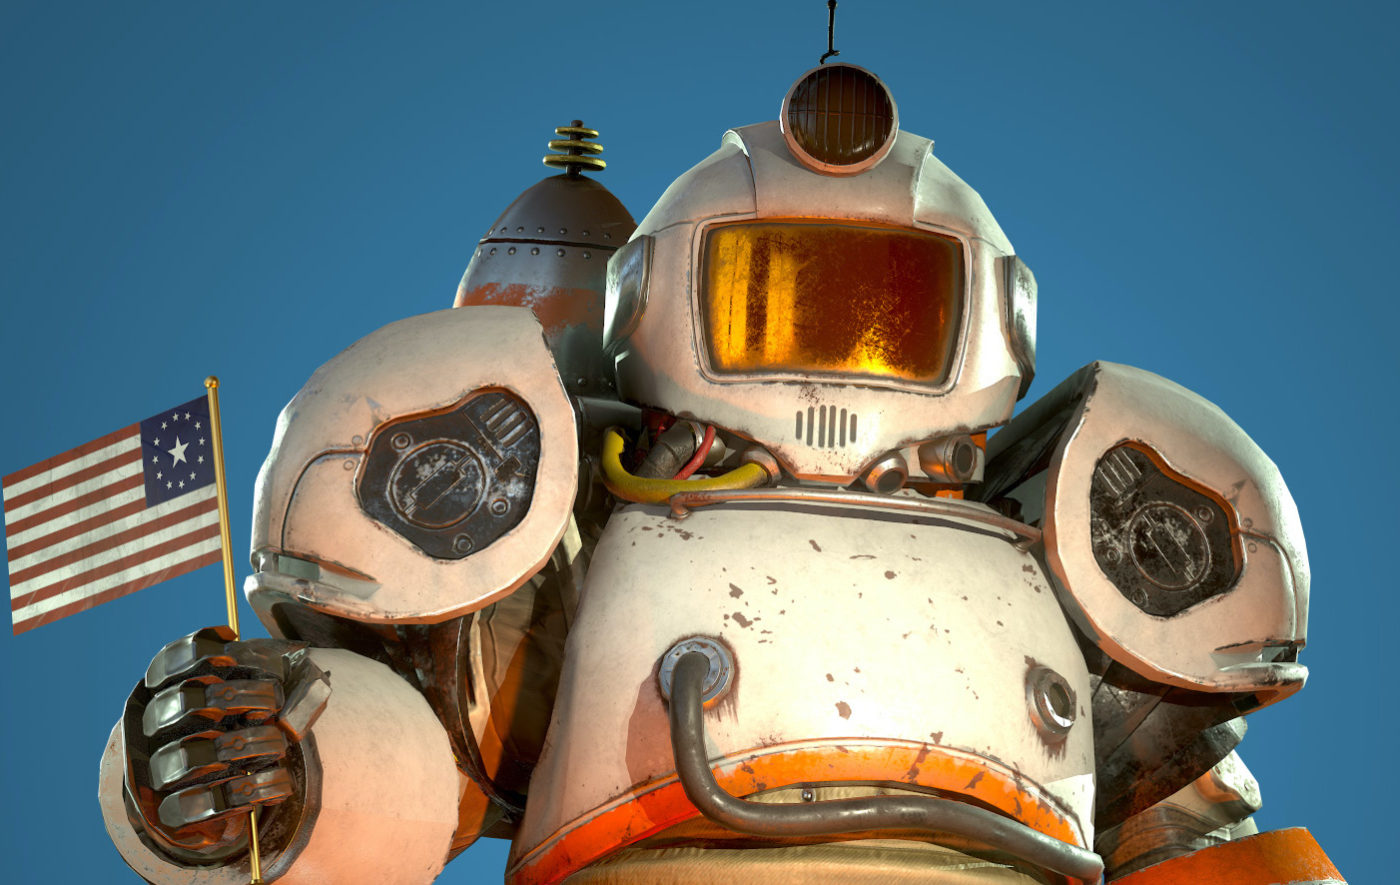 Fallout 76 Update 1.45 October 13